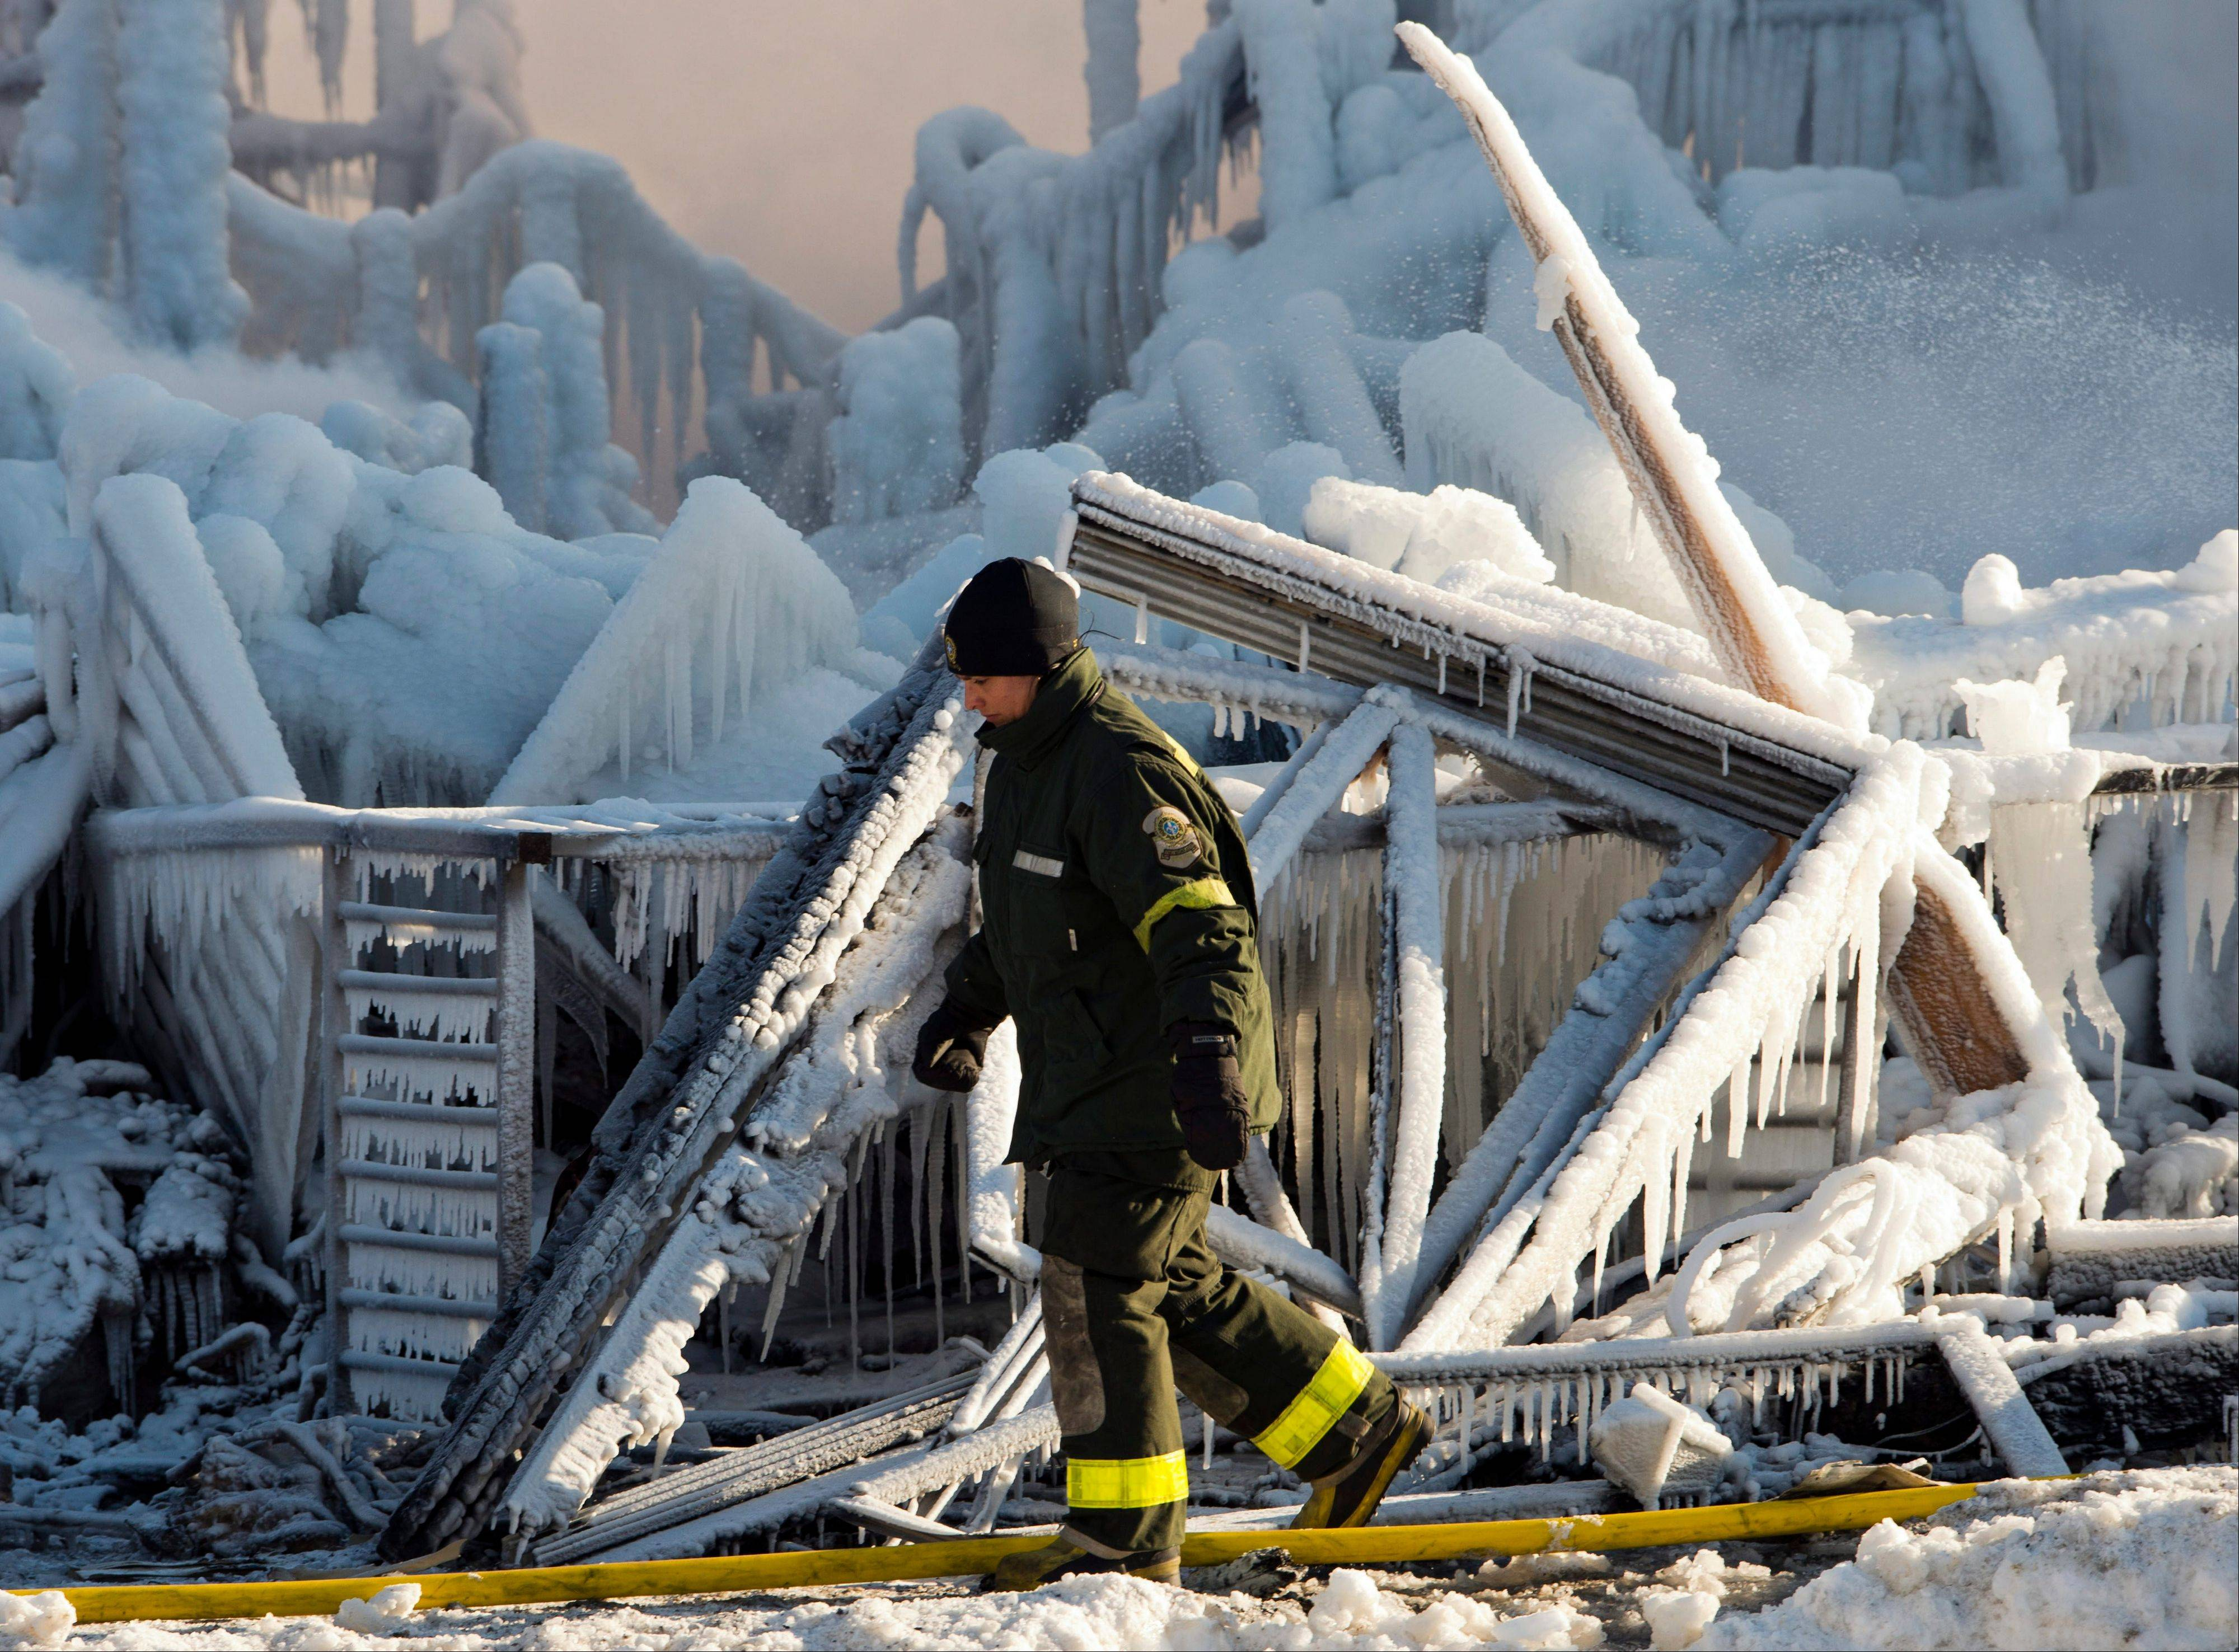 A police investigator looks over the frozen rubble after a fire destroyed a seniors residence in L'Isle-Verte, Que., Thursday. The fire trapped terrified residents, most of them dependent on wheelchairs and walkers and left three confirmed dead and 30 missing.